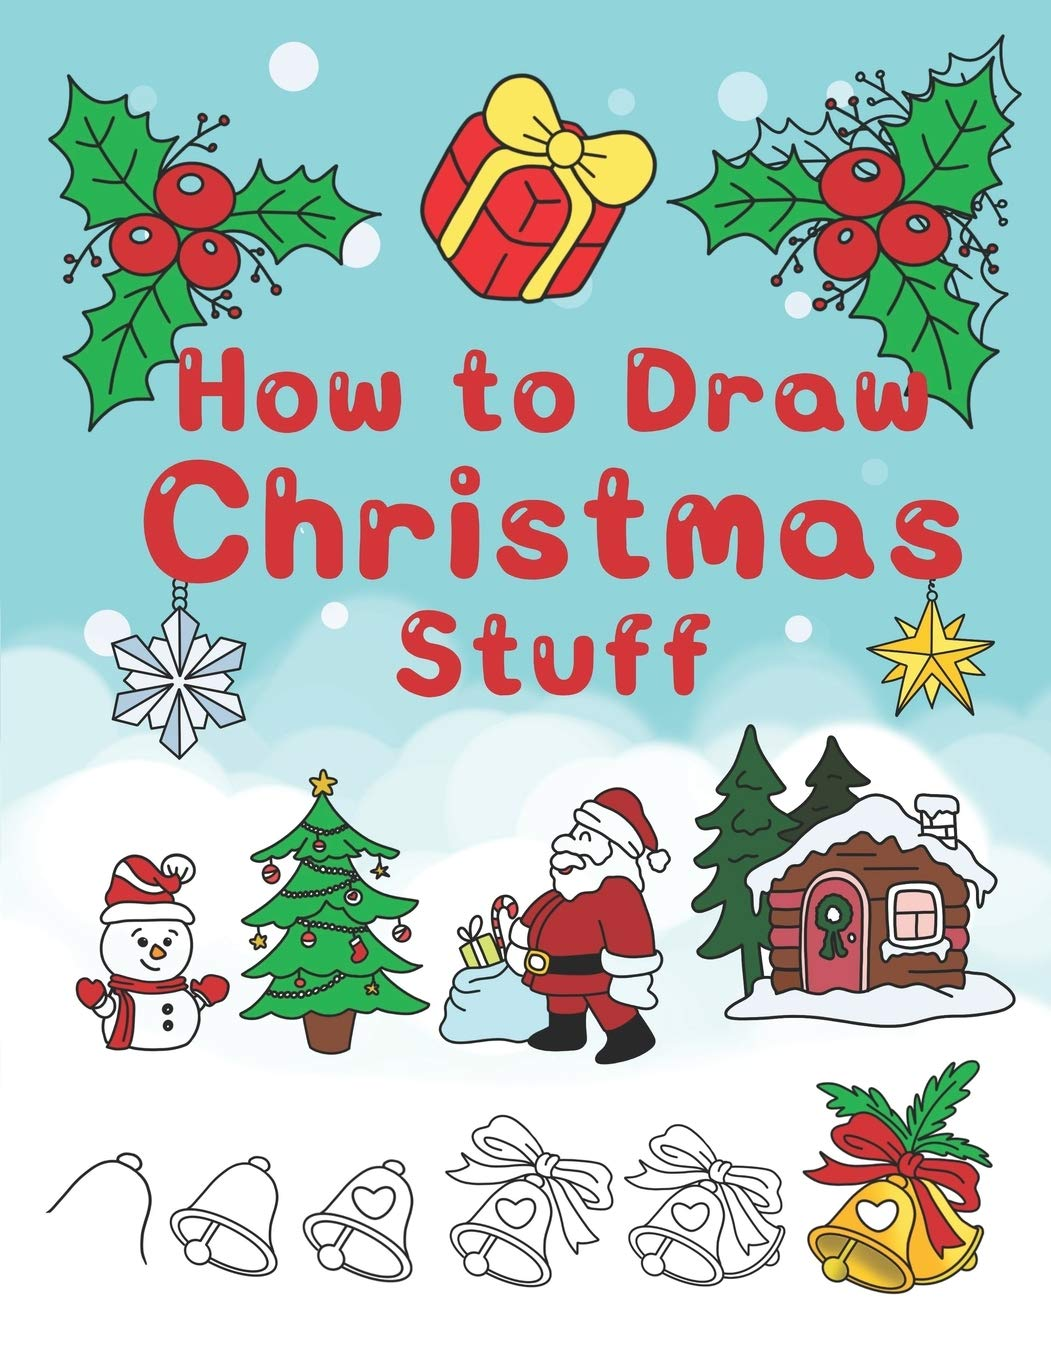 How To Draw Christmas Stuff Step By Step Easy And Fun To Learn Drawing And Creating Your Own Beautiful Christmas Coloring Book And Christmas Cards T Jay 9781705418673 Amazon Com Books